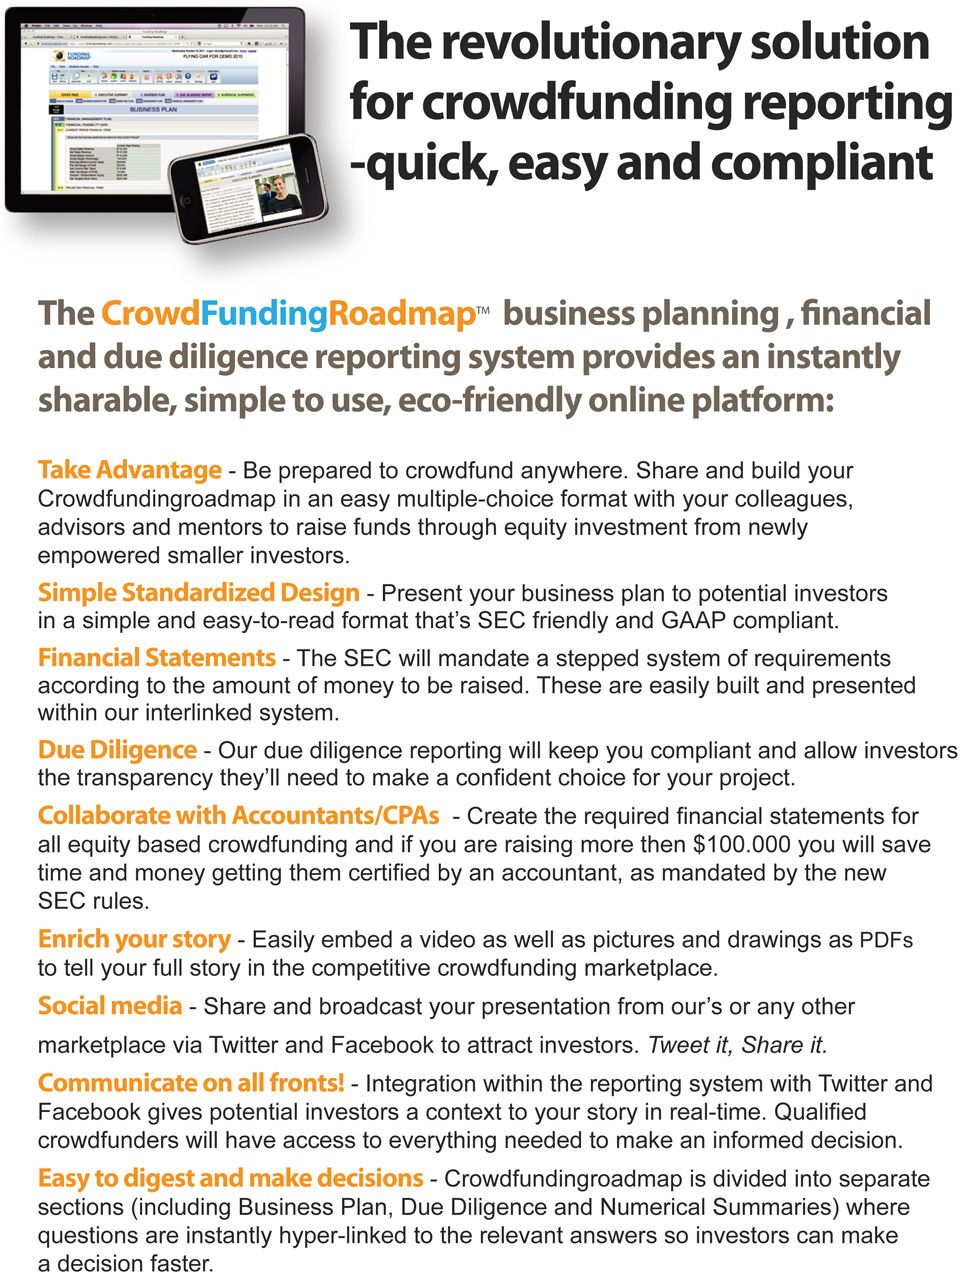 Crowdfundingroadmap business plan and due diligence